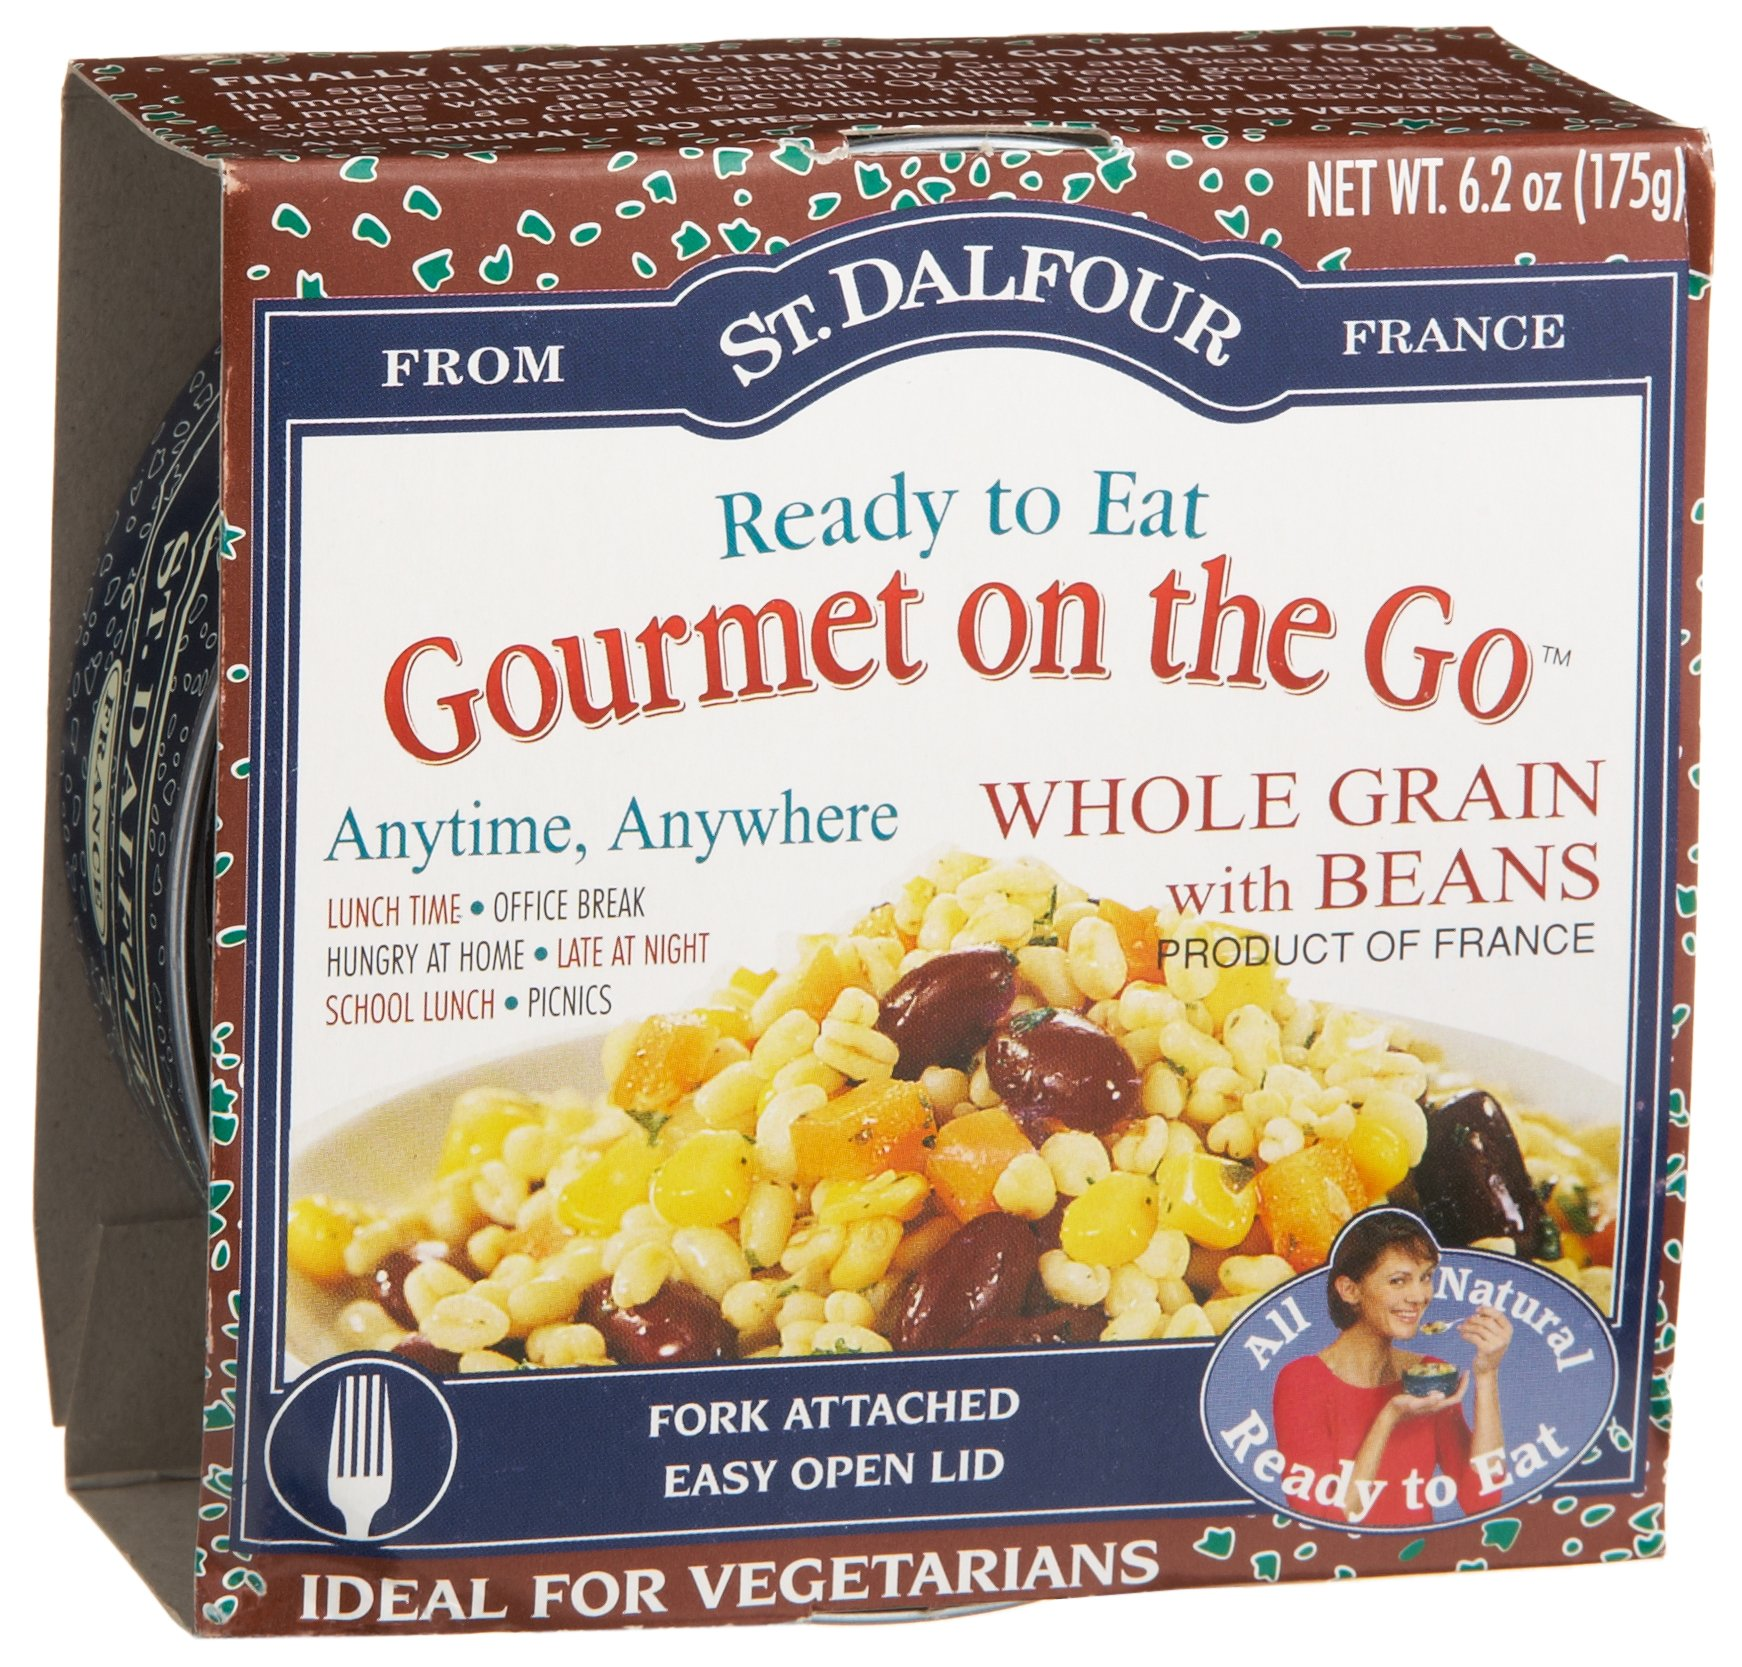 St. Dalfour Gourmet On The Go, Ready to Eat Whole Grain with Beans, 6.2-Ounce (Pack of 6) by St. Dalfour (Image #2)